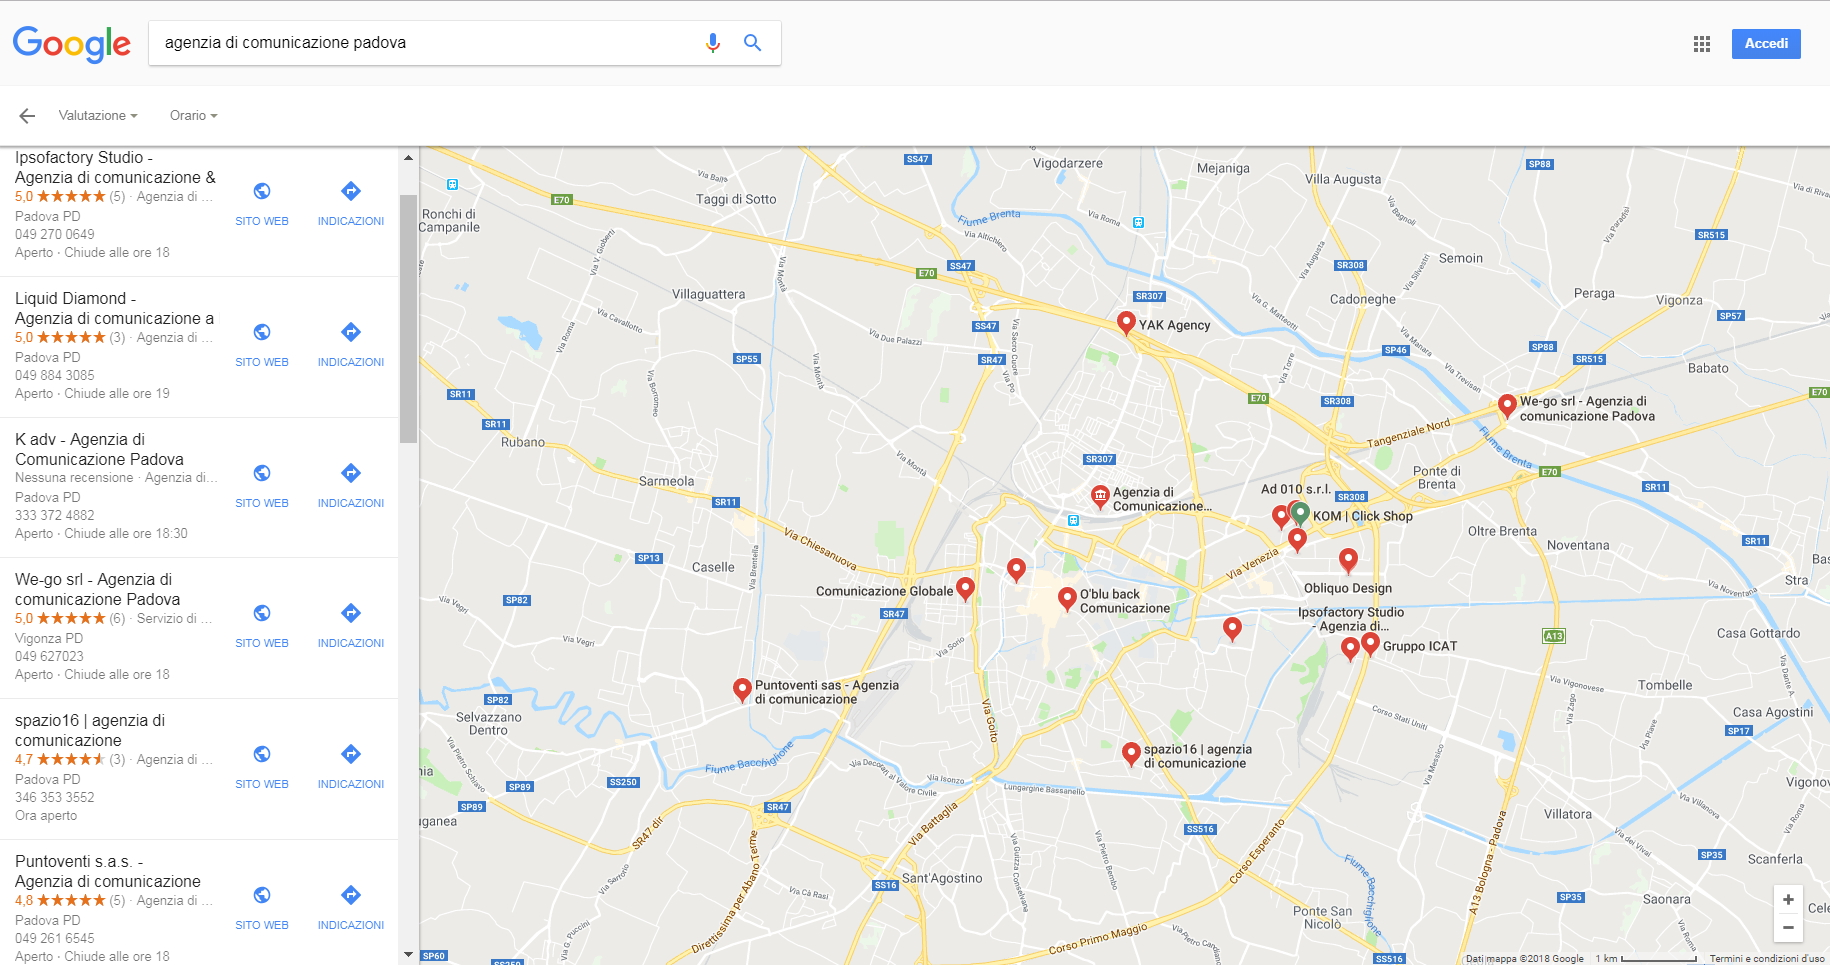 Local Search Marketing Maps